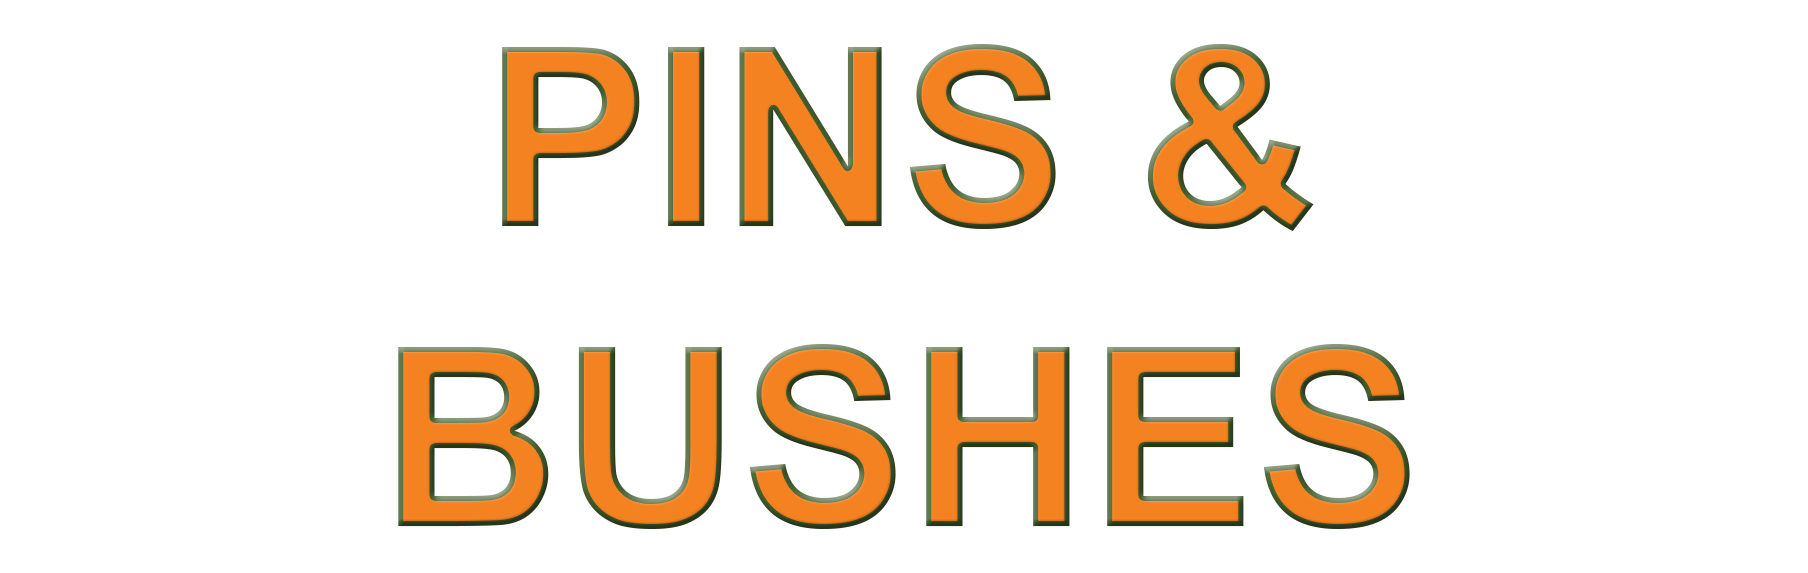 Pins & Bushes